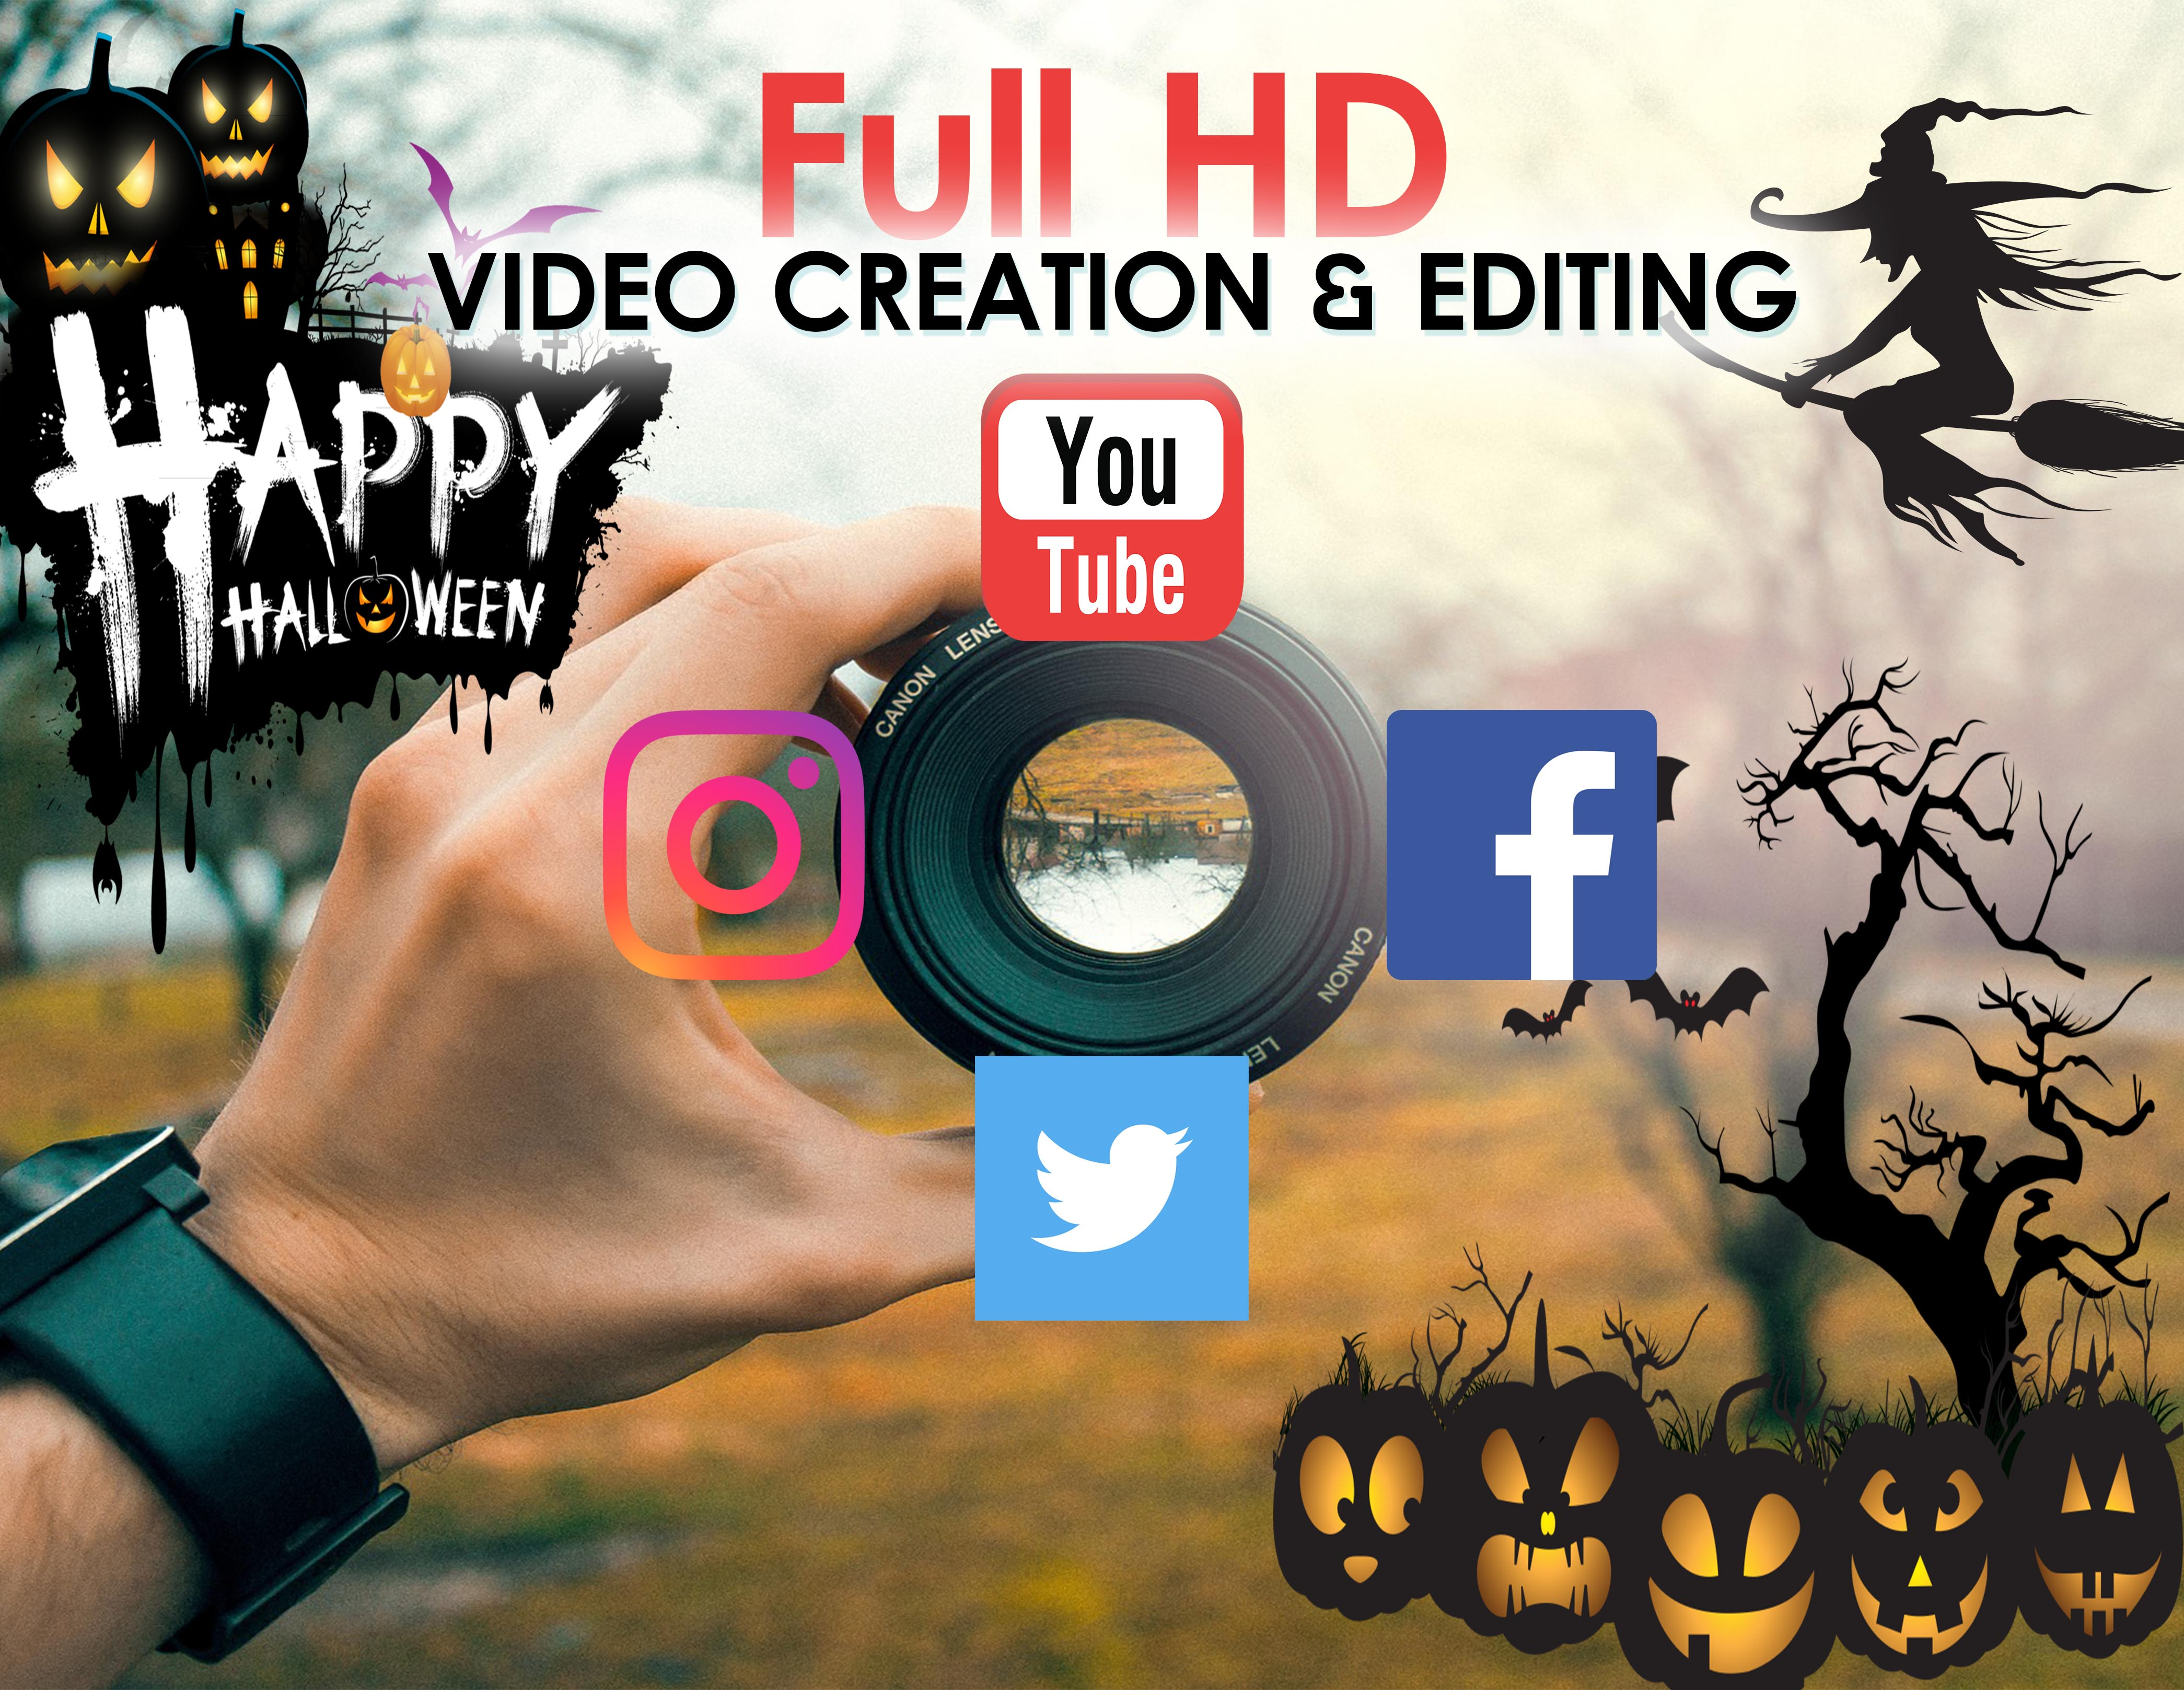 VIDEO CREATION AND EDITING FOR SOCIAL MEDIA PLATFORMS